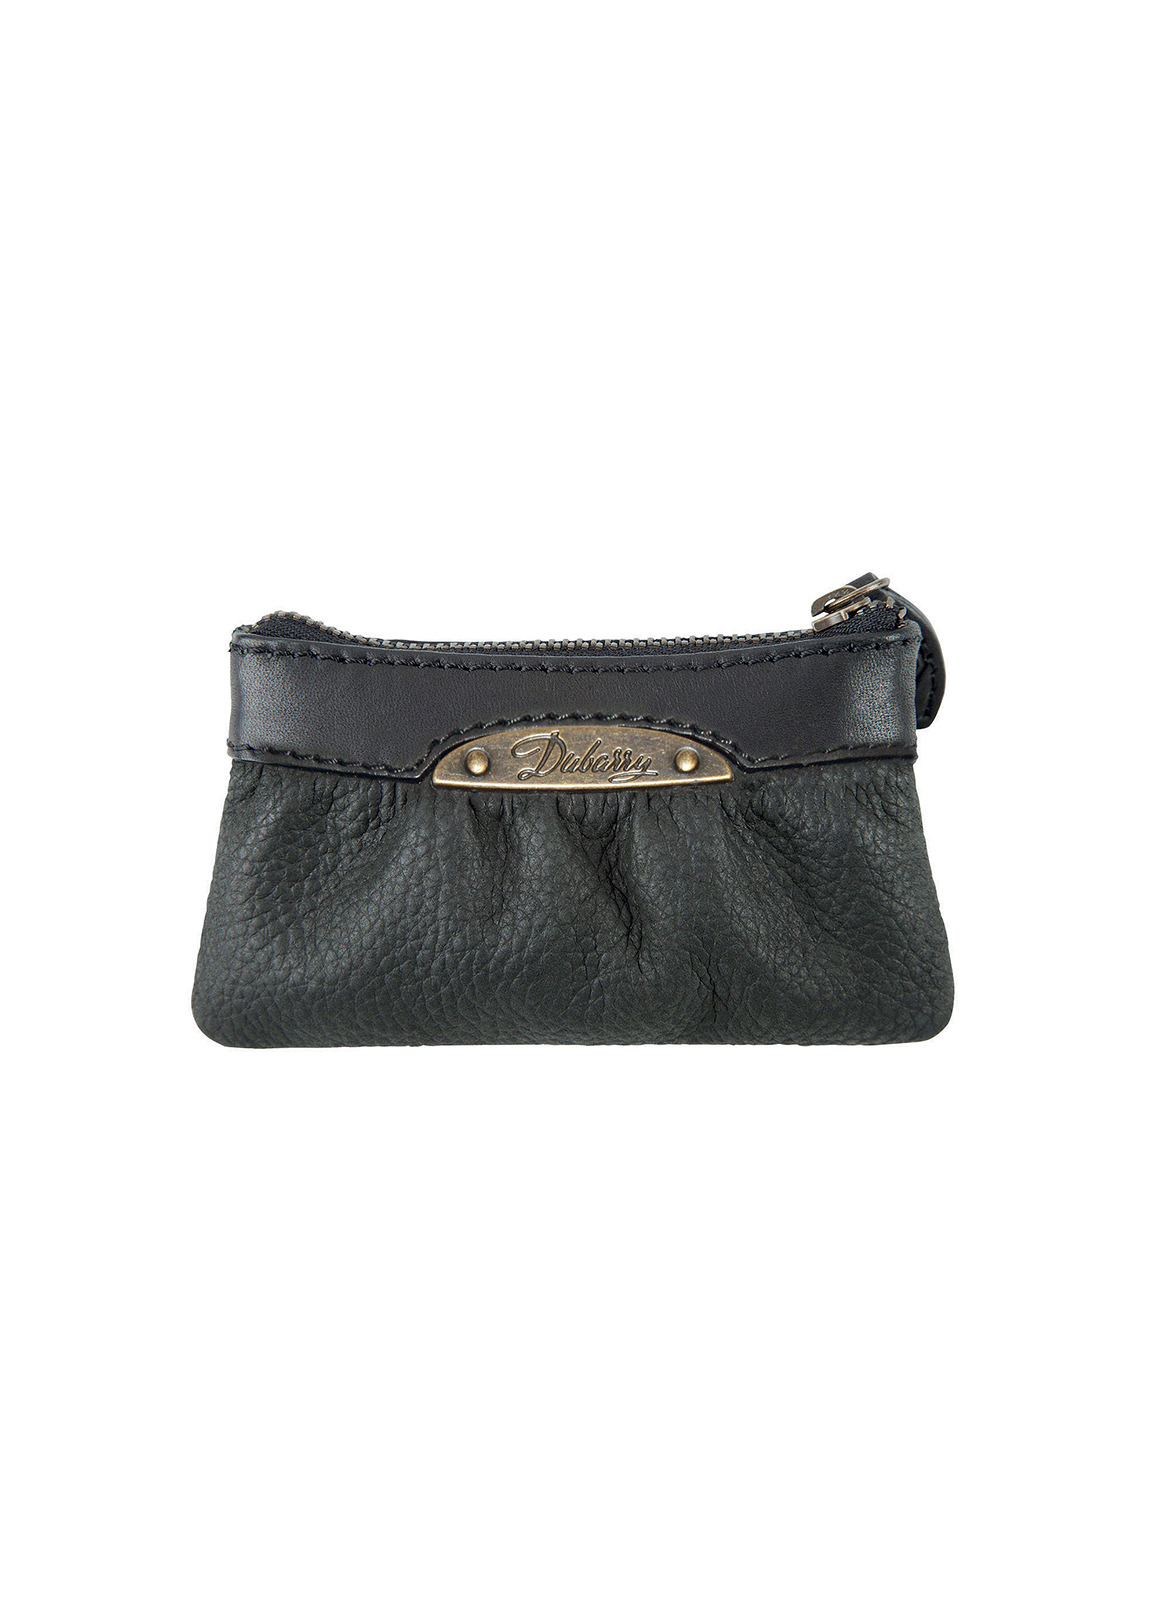 Blarney Purse  - Black